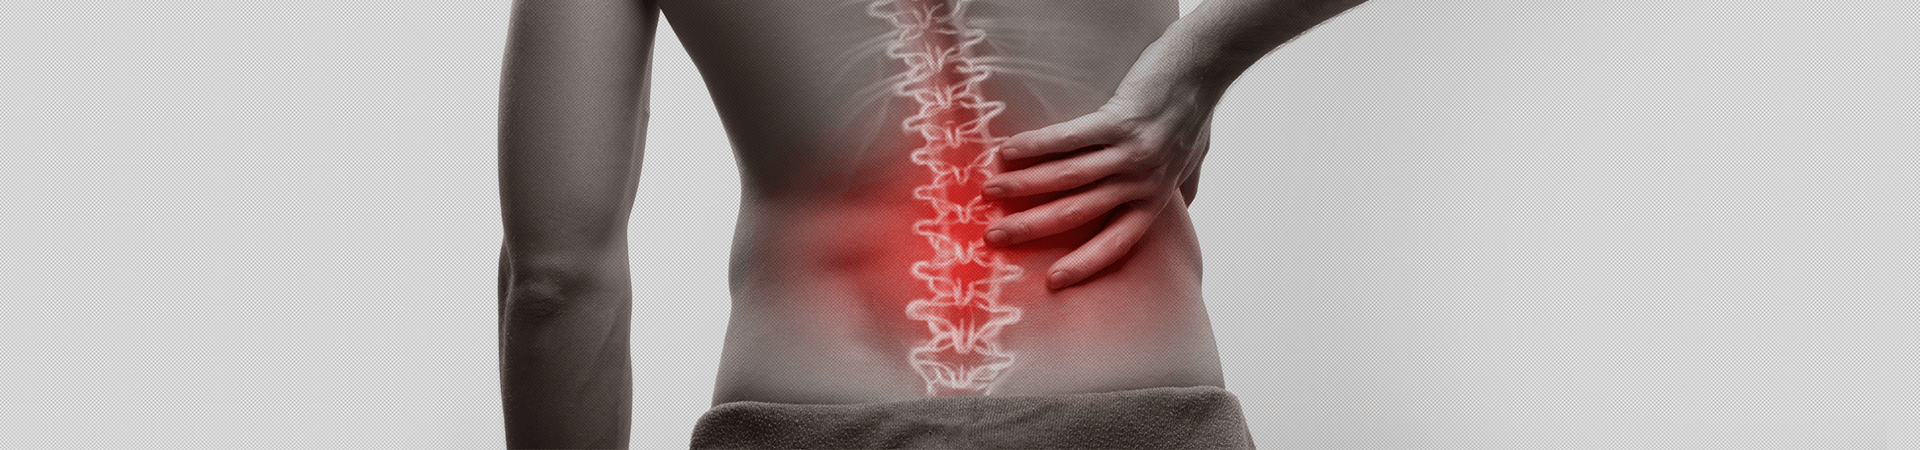 Physical Therapy For Back Injury: Back Pain Relief